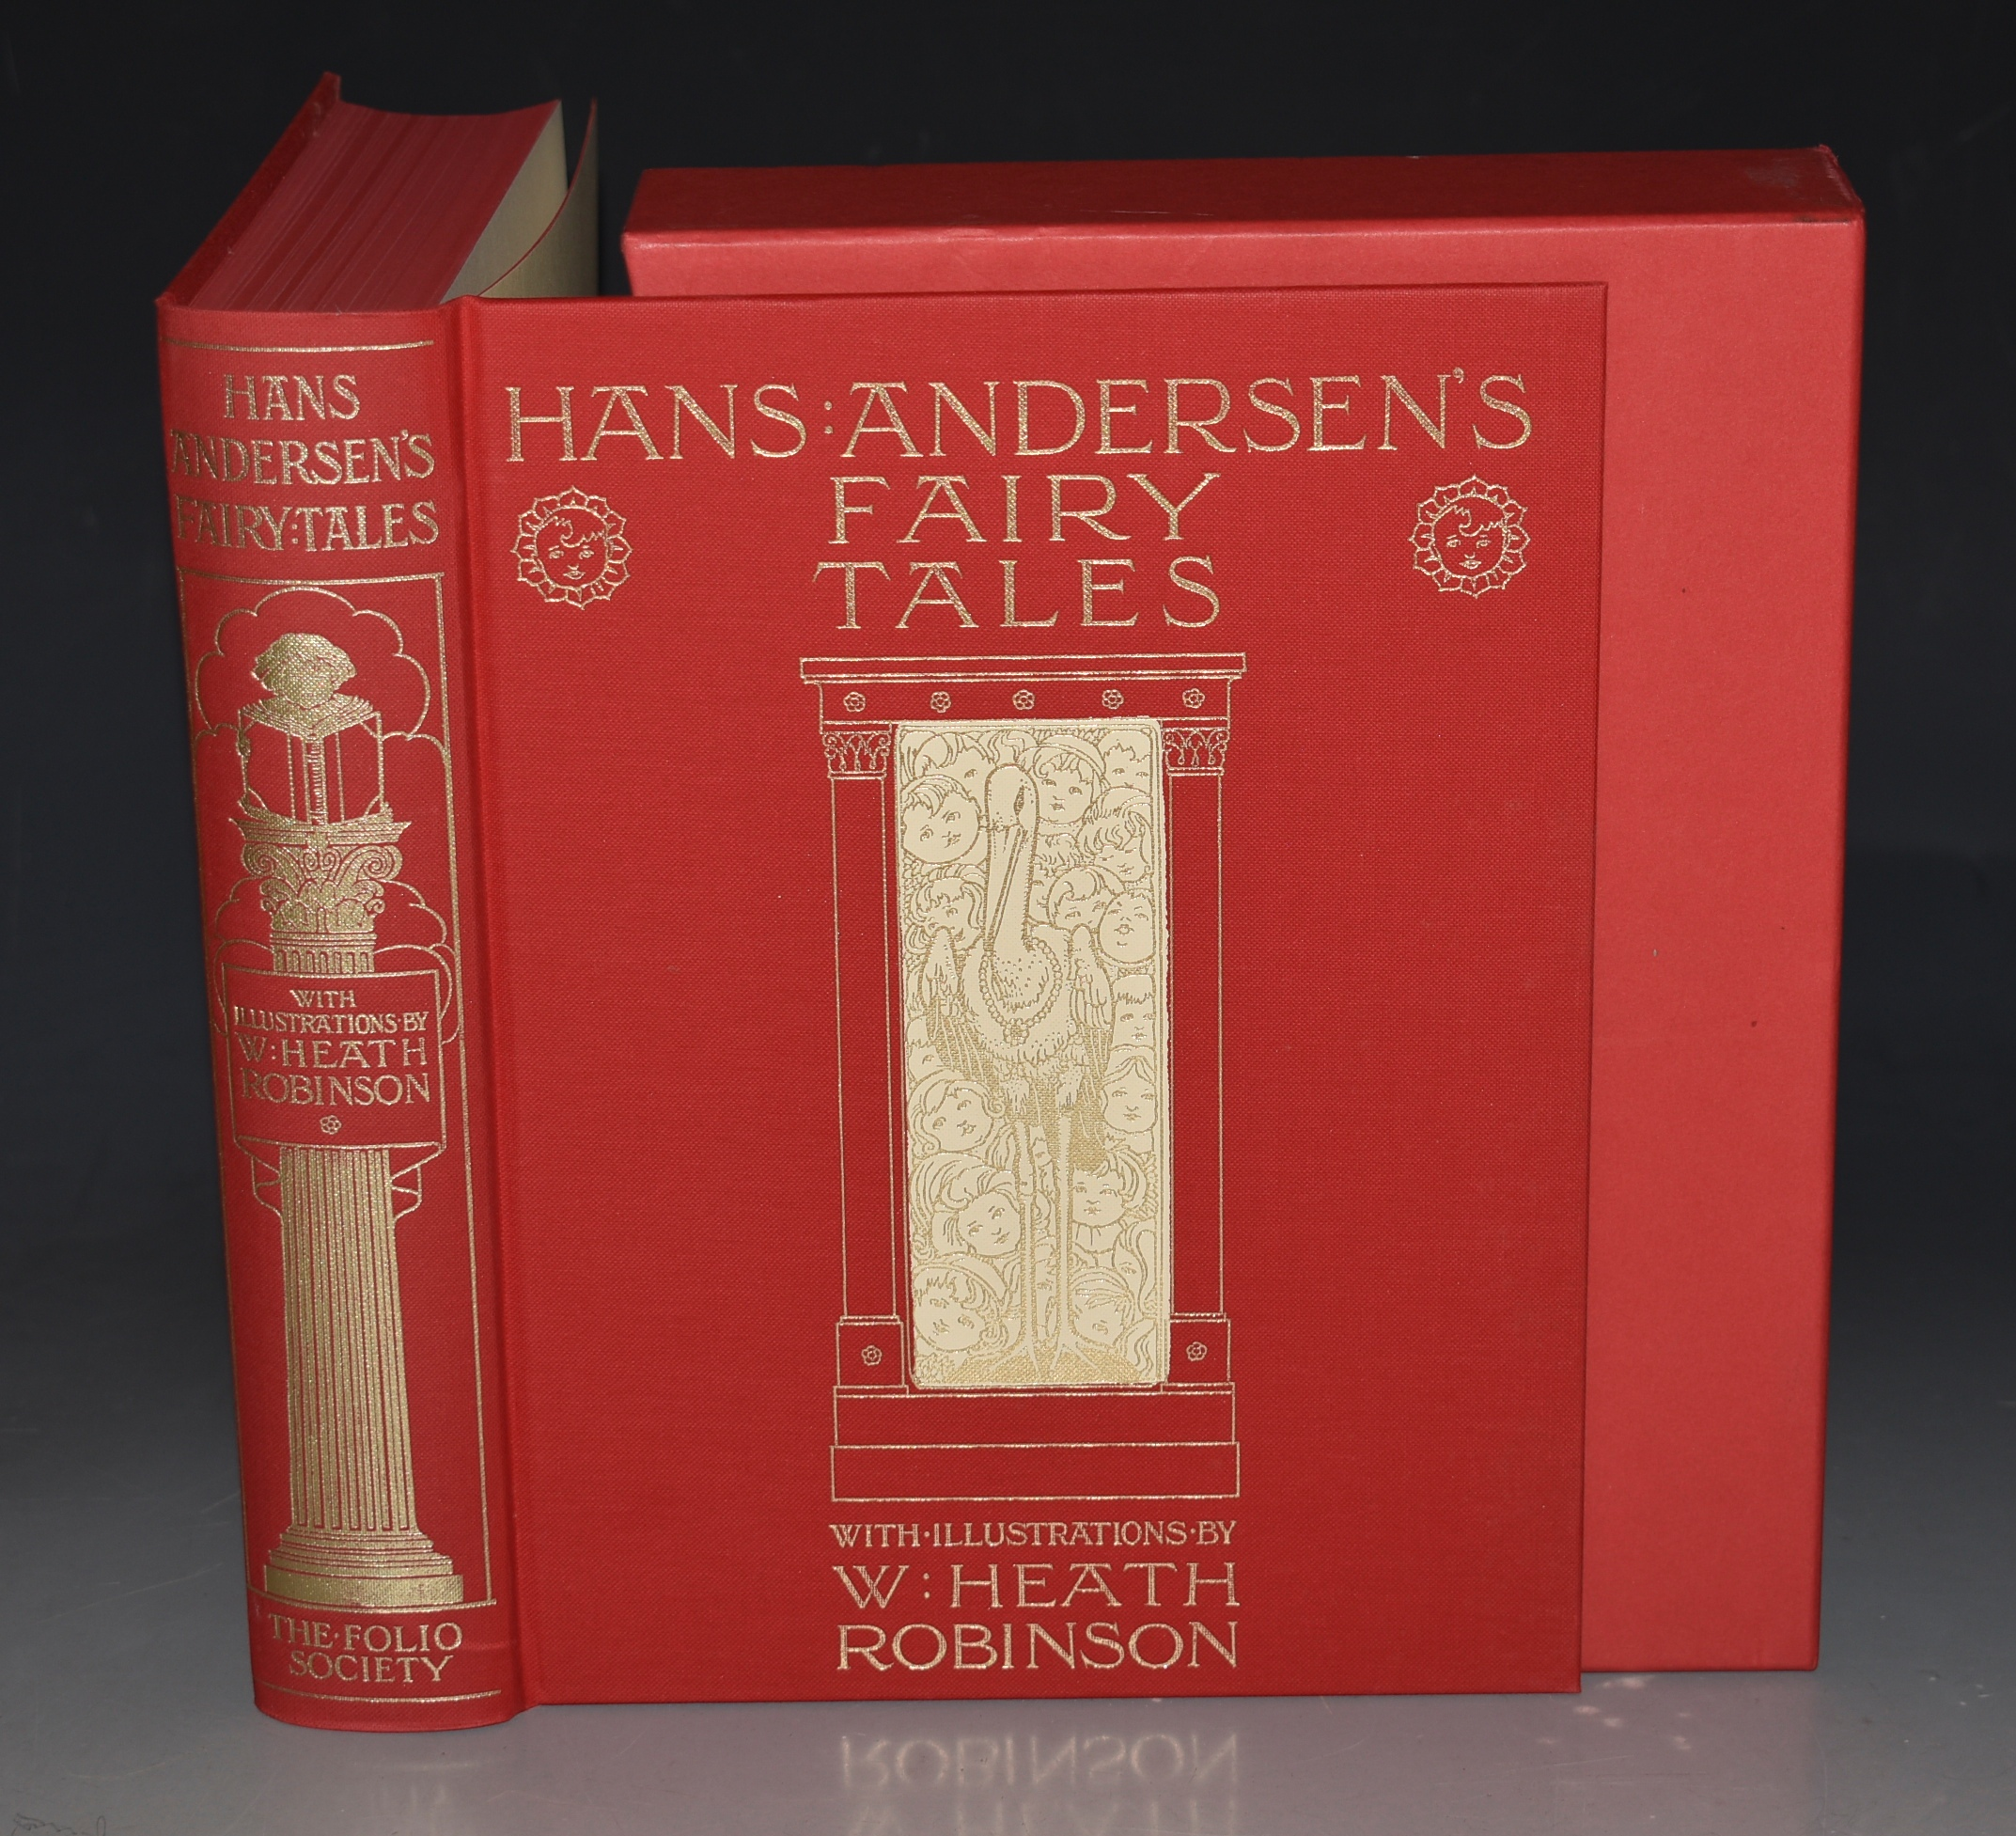 Image for Hans Andersen's Fairy Tales. Illustrated by W. HEATH ROBINSON.